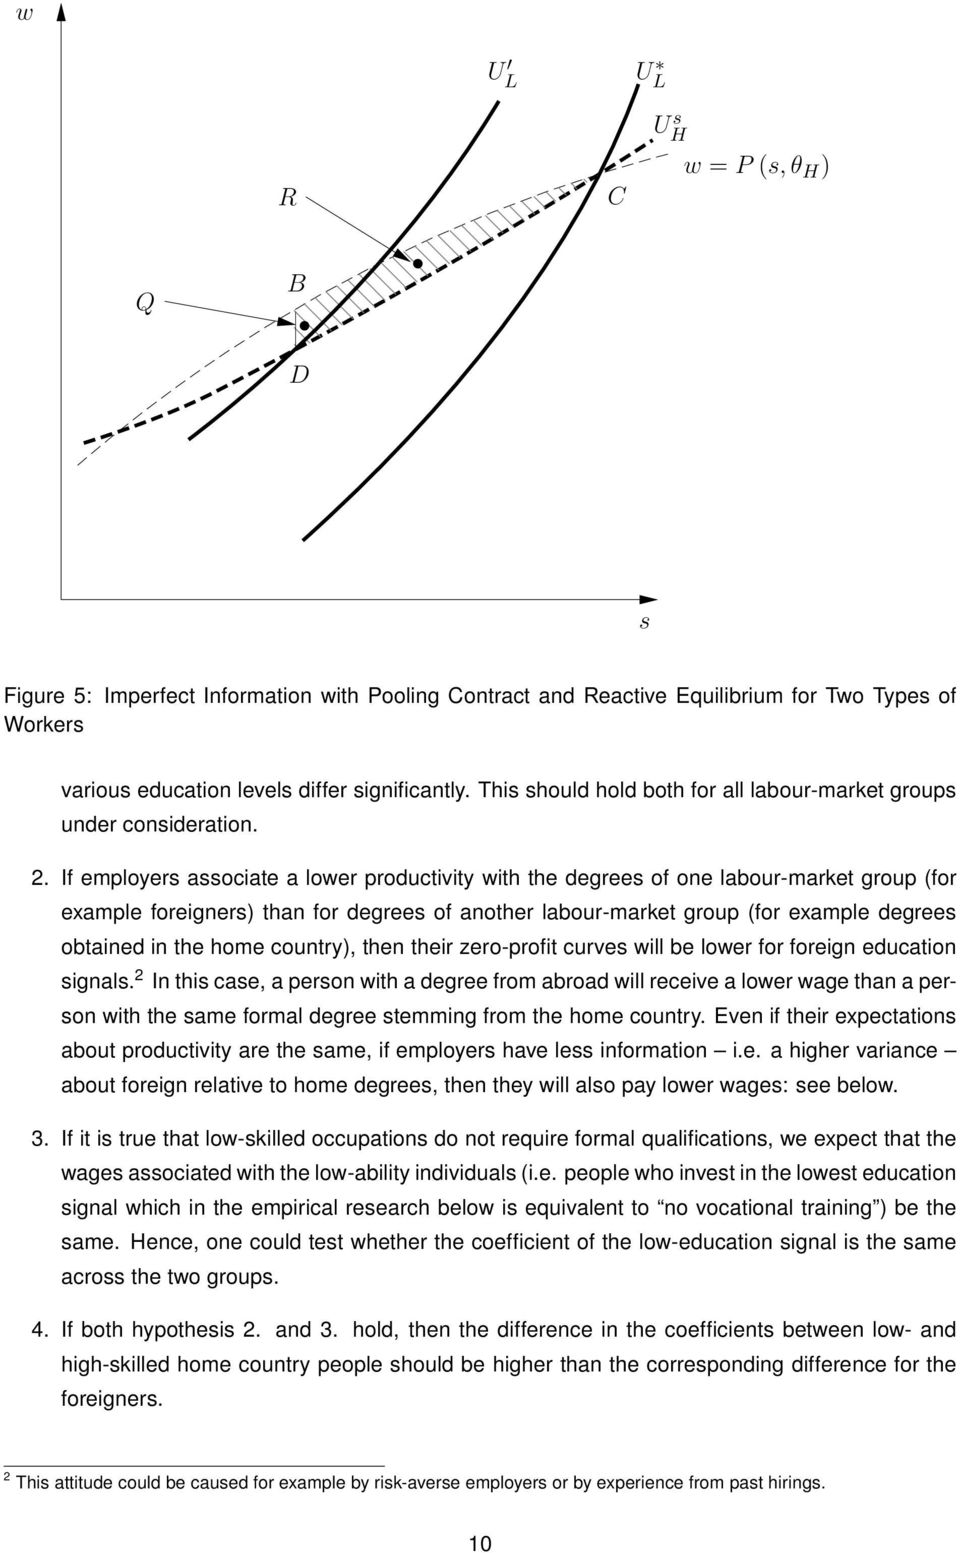 If employers associate a lower productivity with the degrees of one labour-market group (for example foreigners) than for degrees of another labour-market group (for example degrees obtained in the